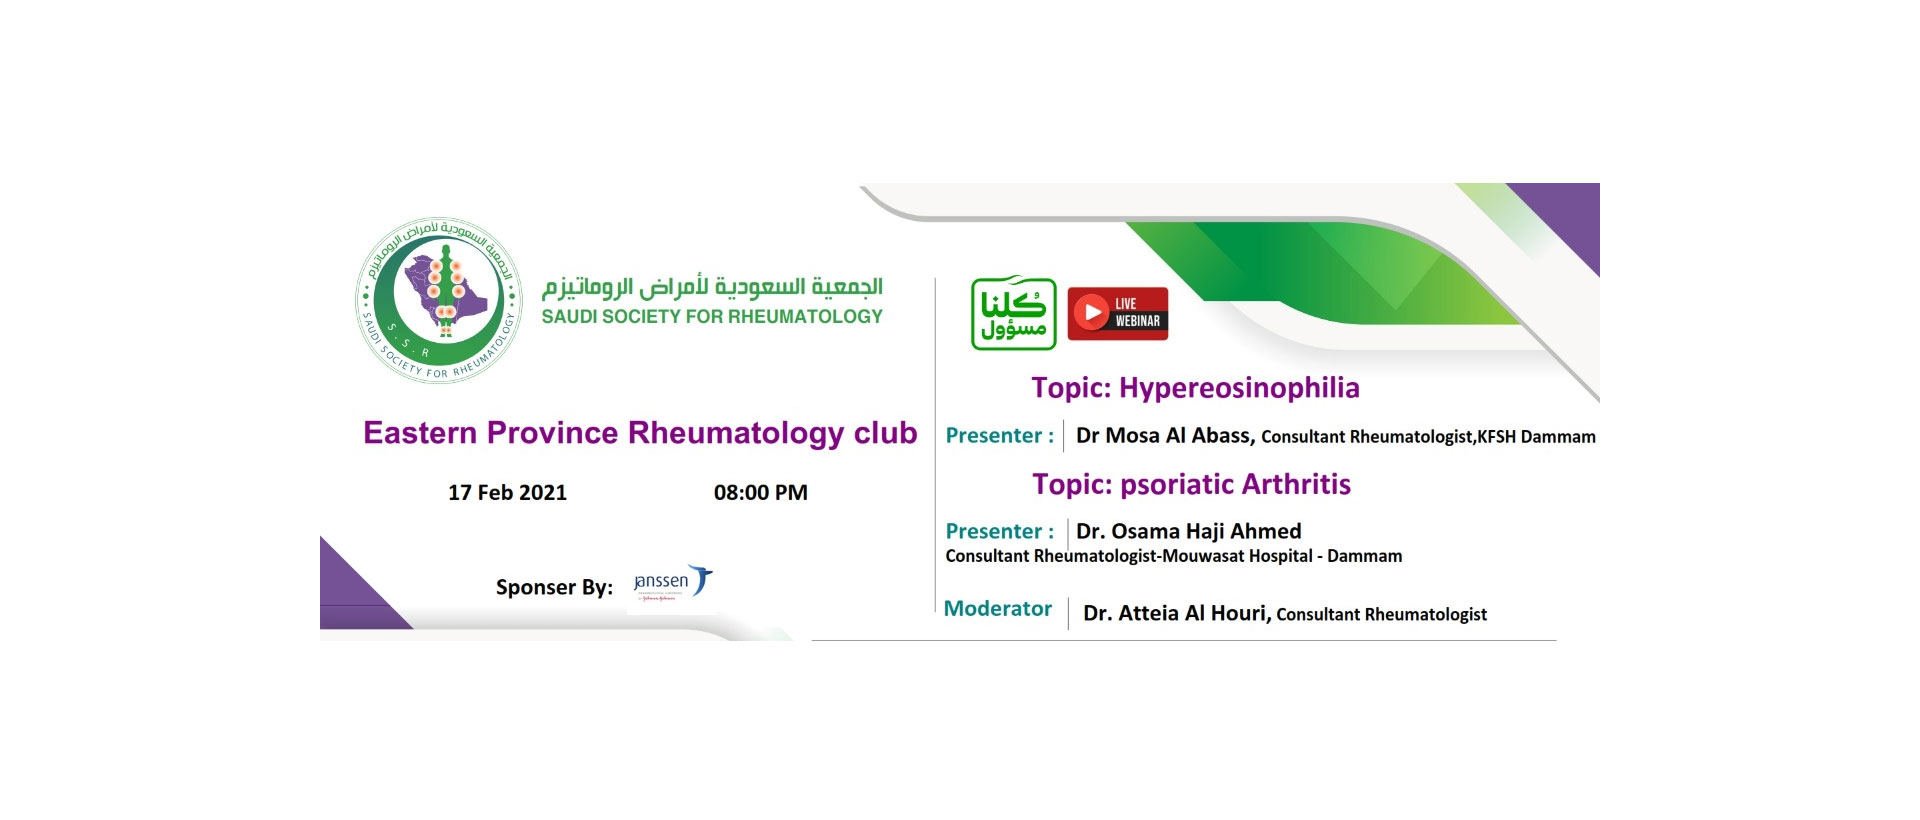 Eastern Province Rheumatology club